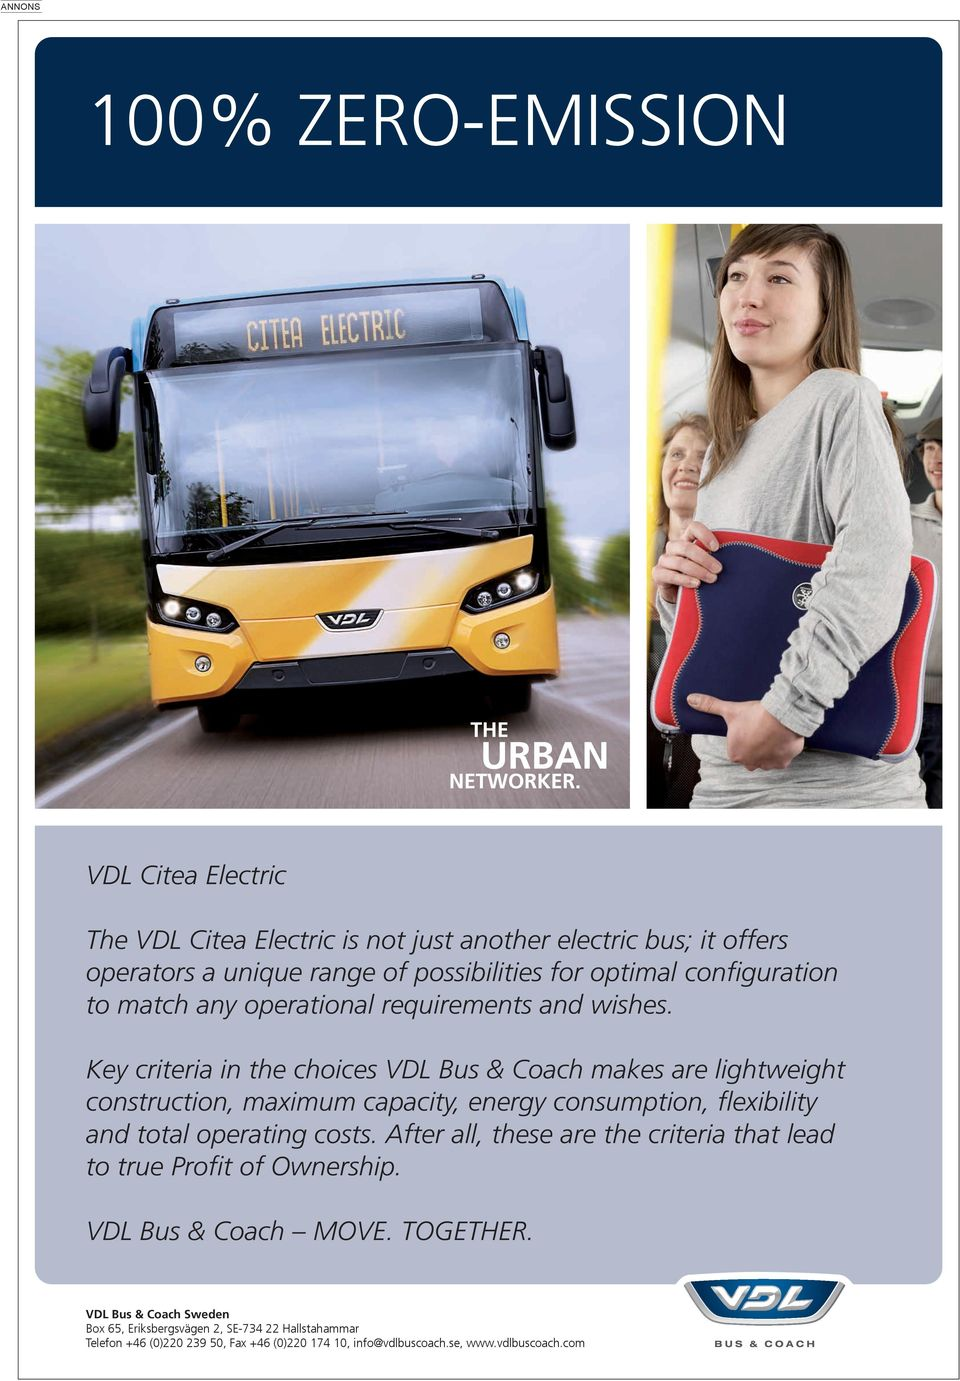 Key criteria in the choices VDL Bus & Coach makes are lightweight construction, maximum capacity, energy consumption, flexibility and total operating costs.